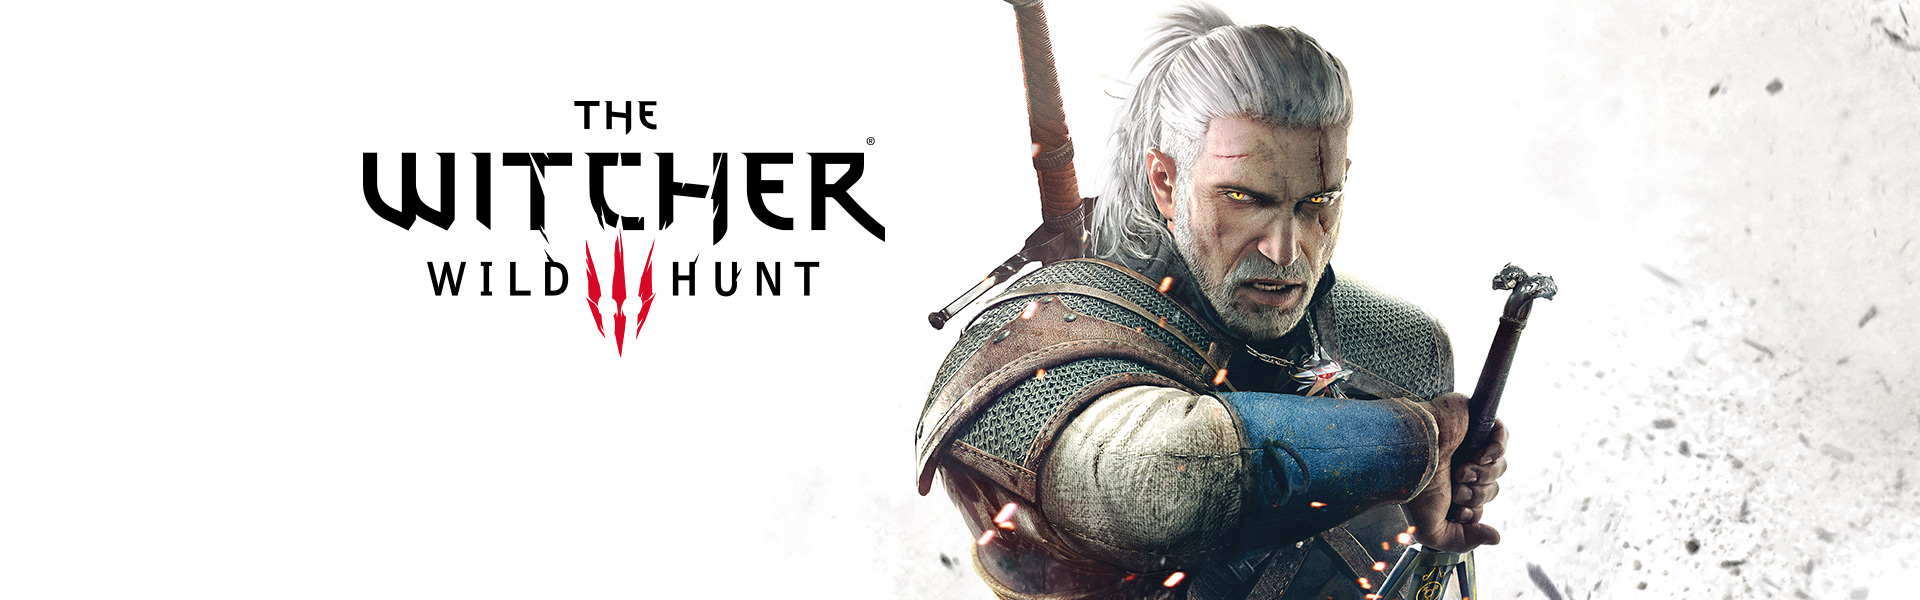 The Witcher 3 Wild Hunt, front view of Geralt unsheathing his sword